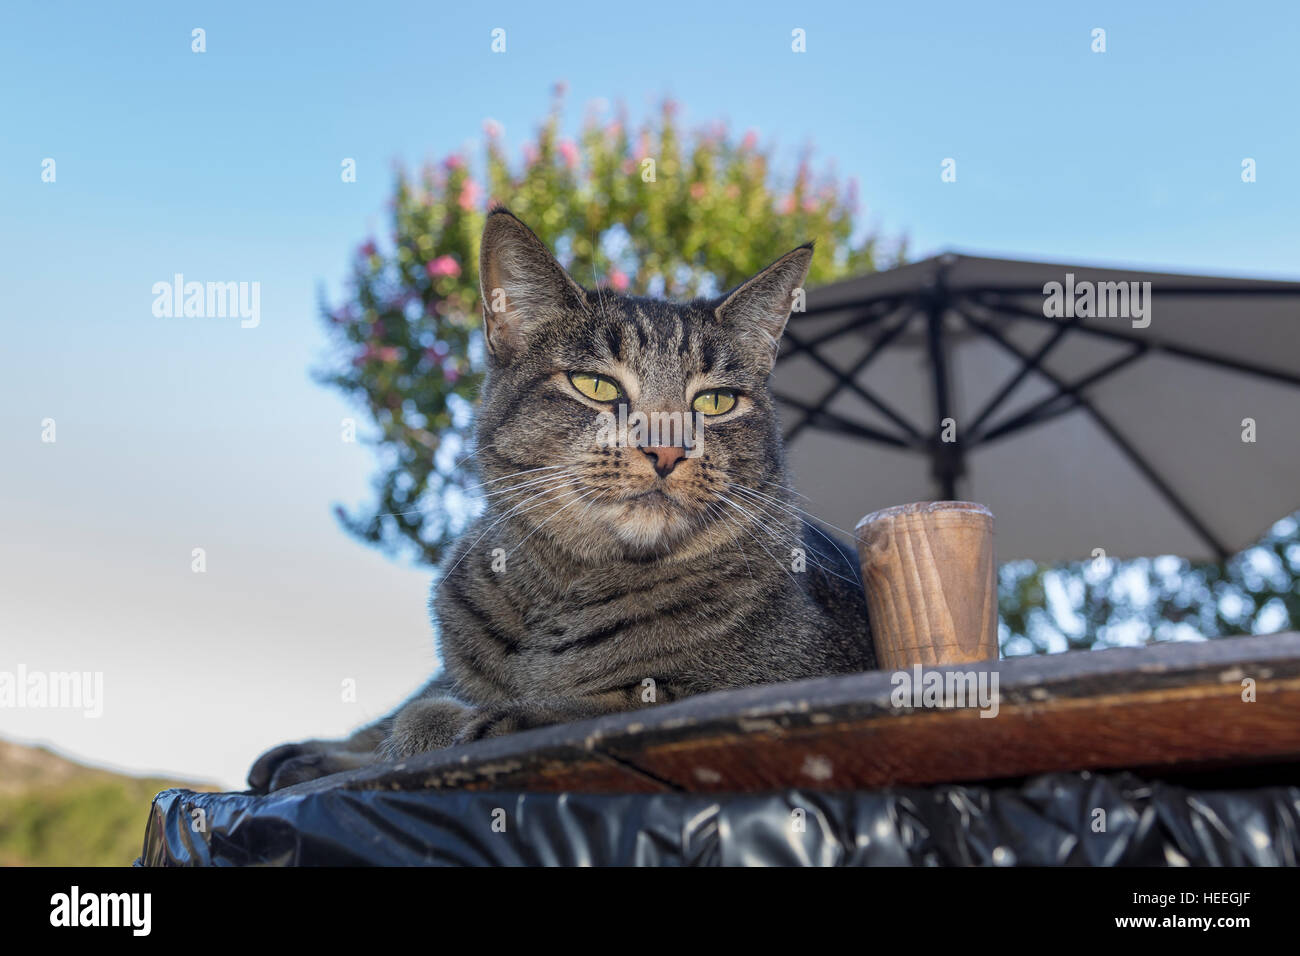 Tabby cat, Sonoma, Sonoma County, California - Stock Image